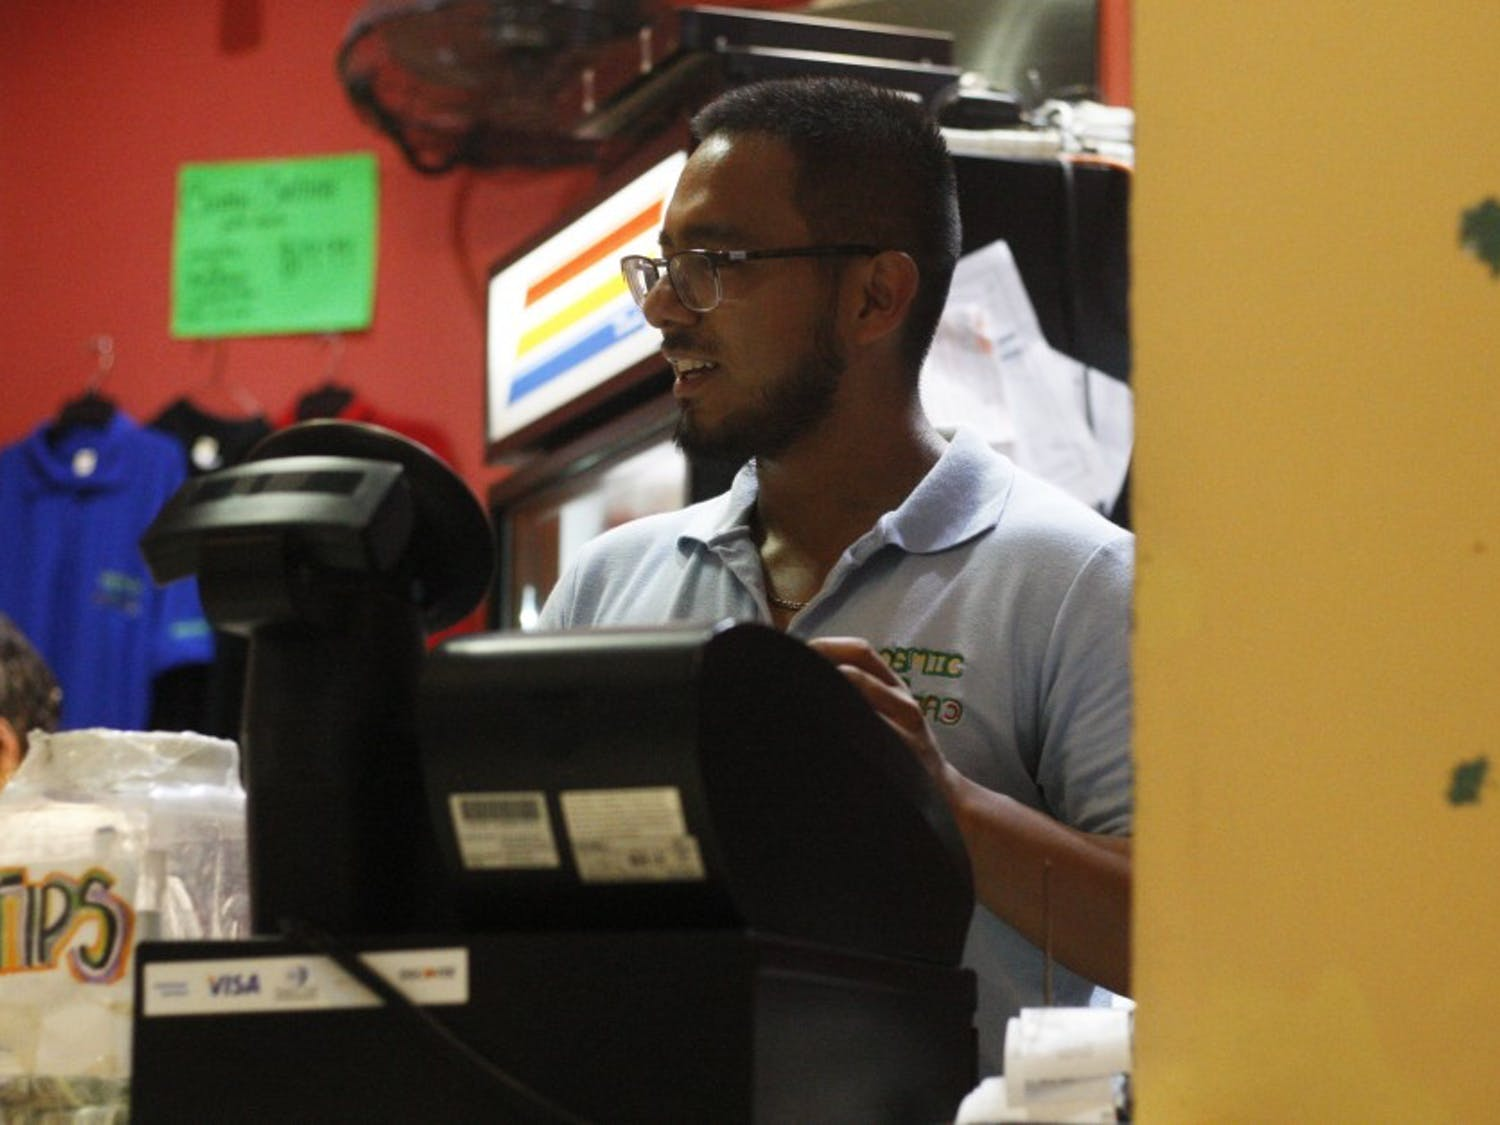 Yeshua Sanchez, a manager at Cosmic Cantina, takes an order in Cosmic on Thursday, July 11, 2019.